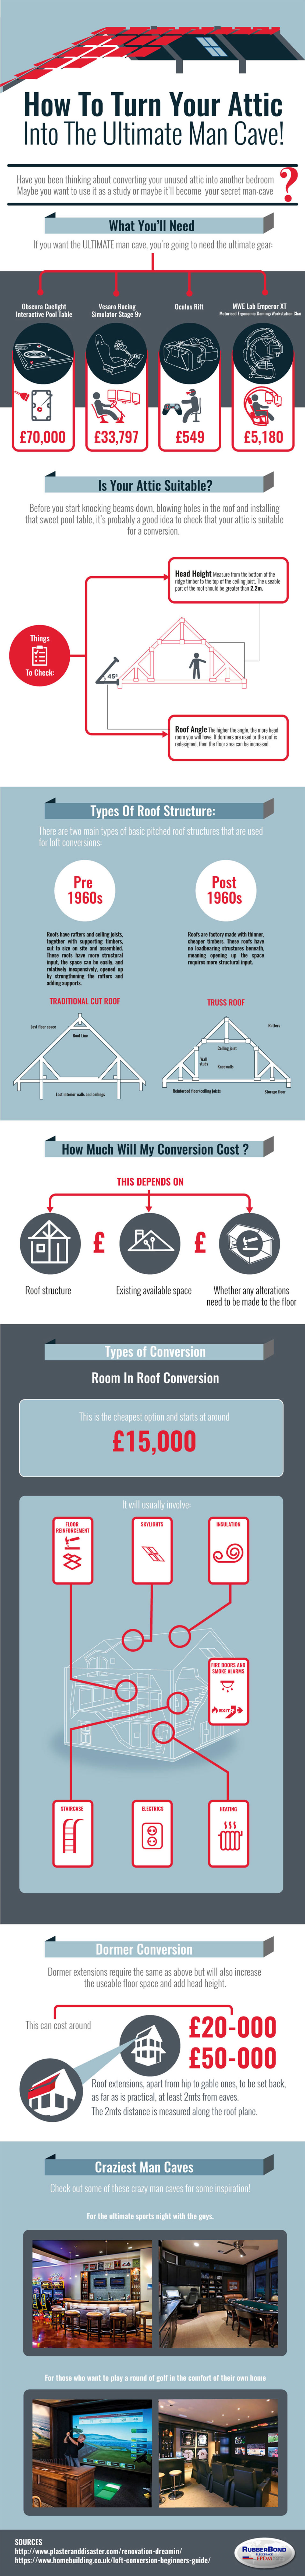 How To Convert Your Attic Into a Perfect Man Cave Infographic